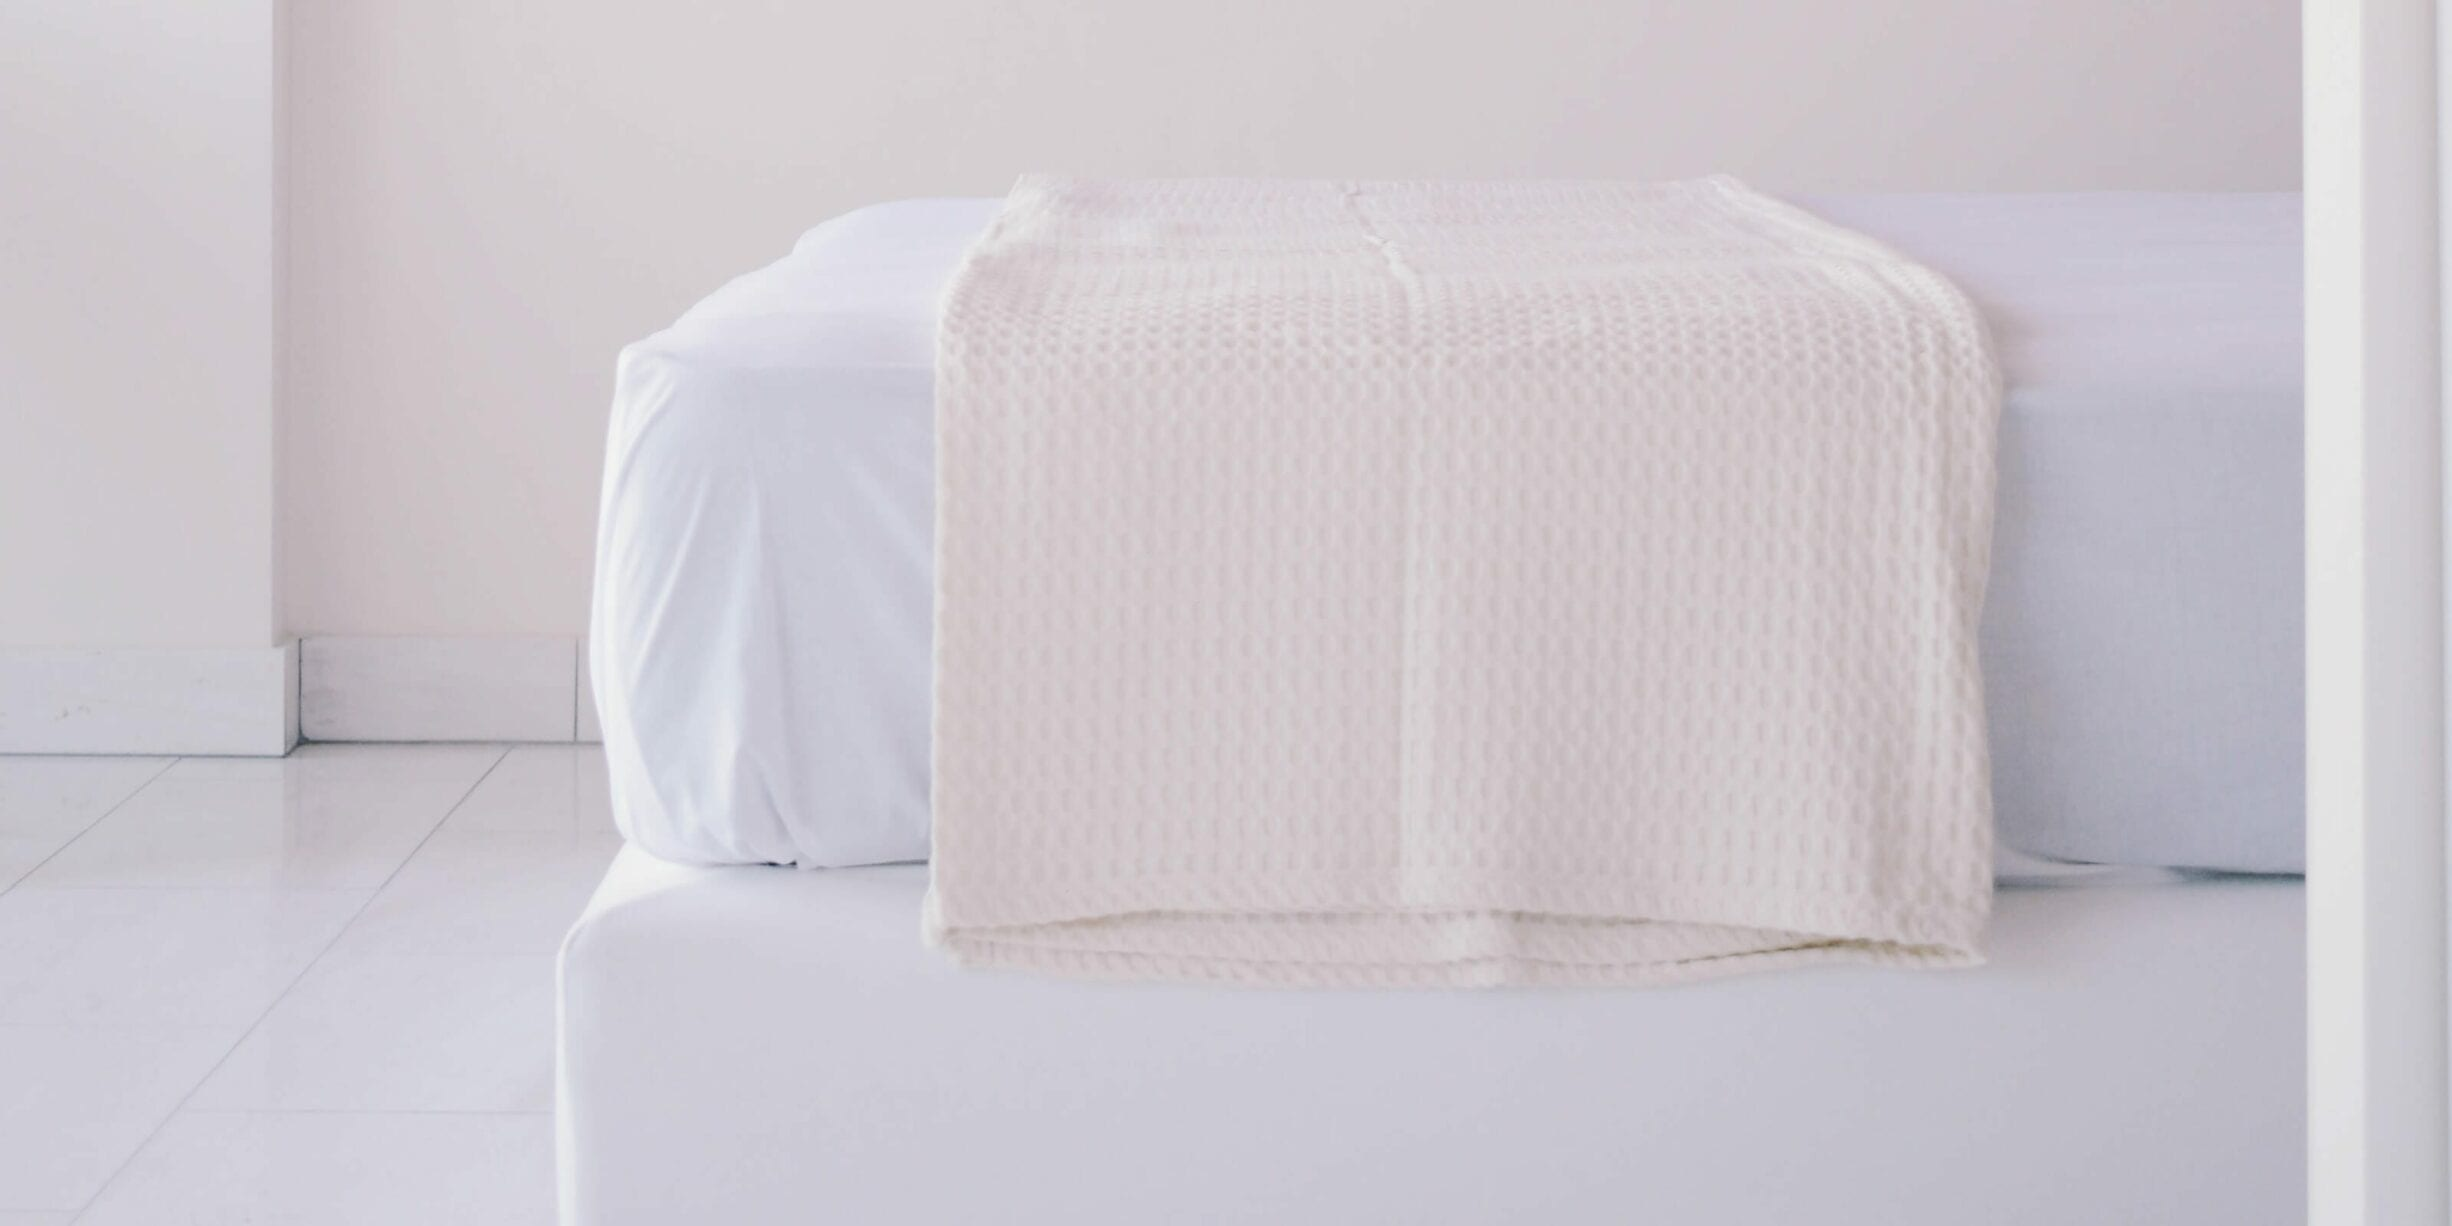 keetsa mattress, bed frame, duvet cover